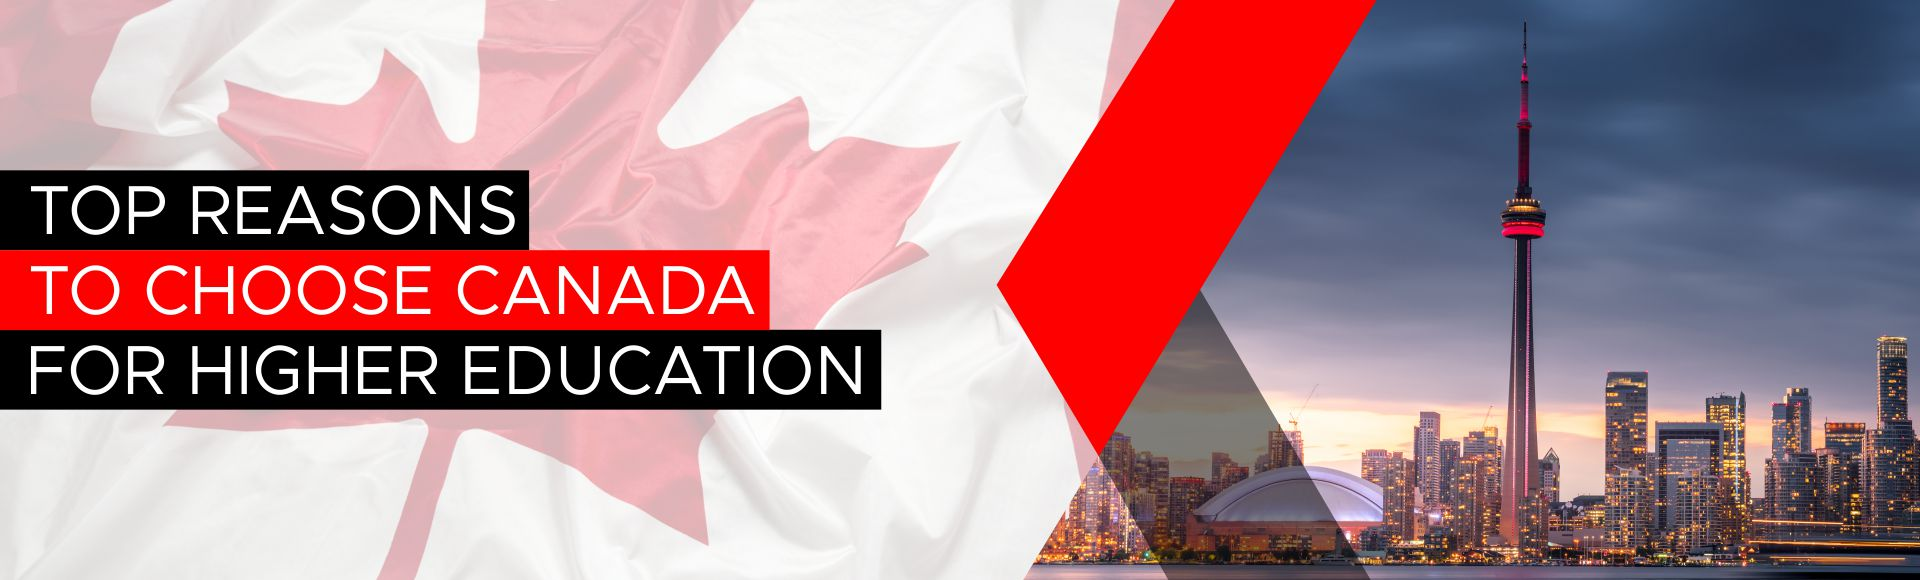 Top Reasons to Choose Canada for Higher education